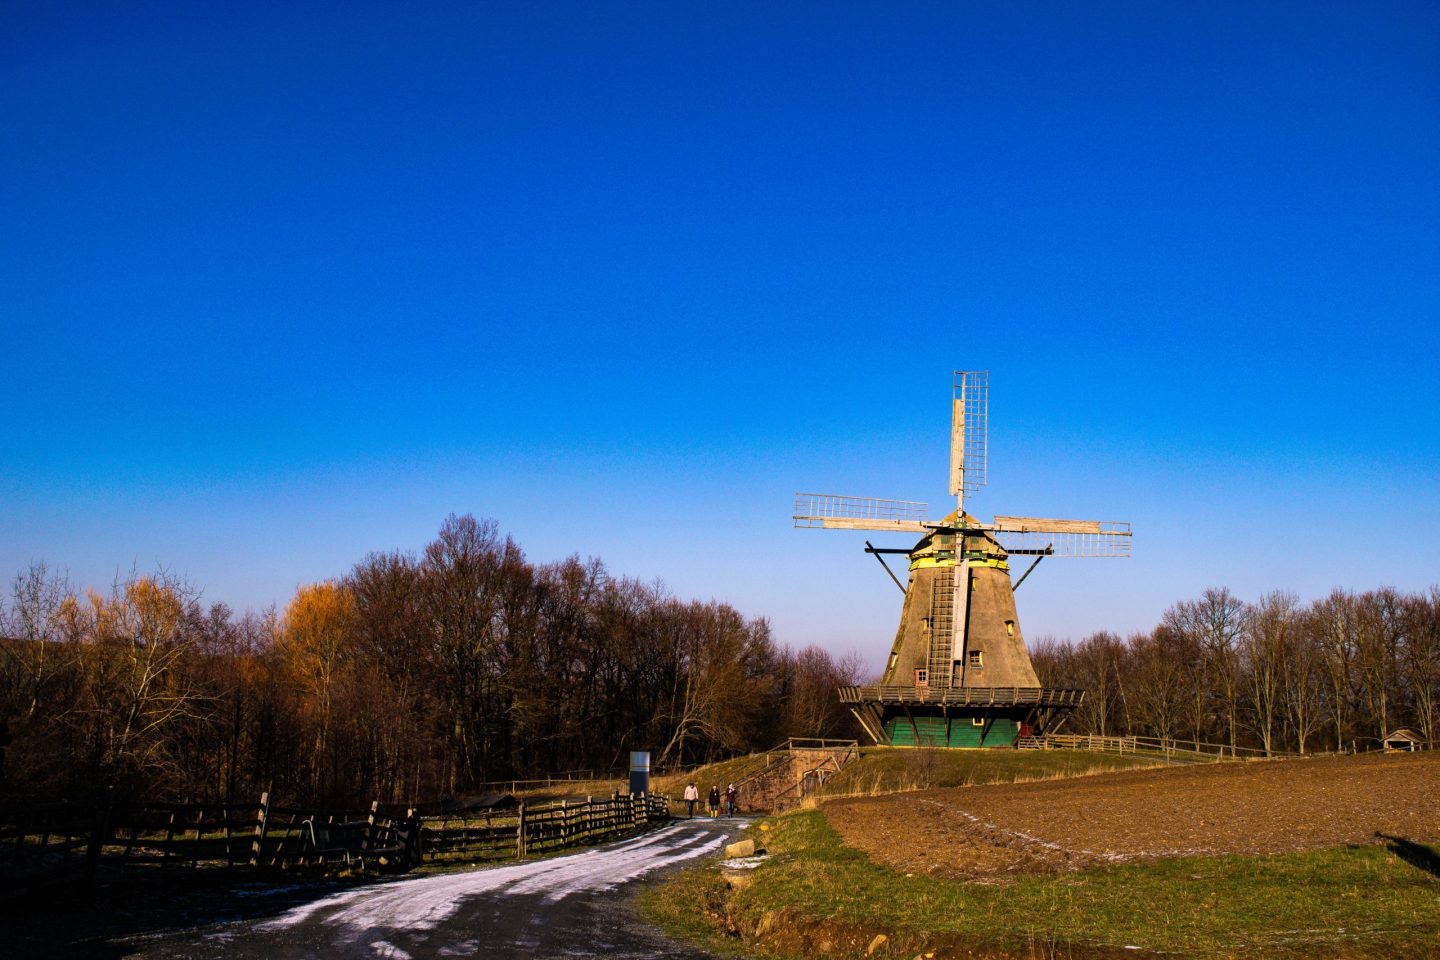 Windmill at the Hessenpark